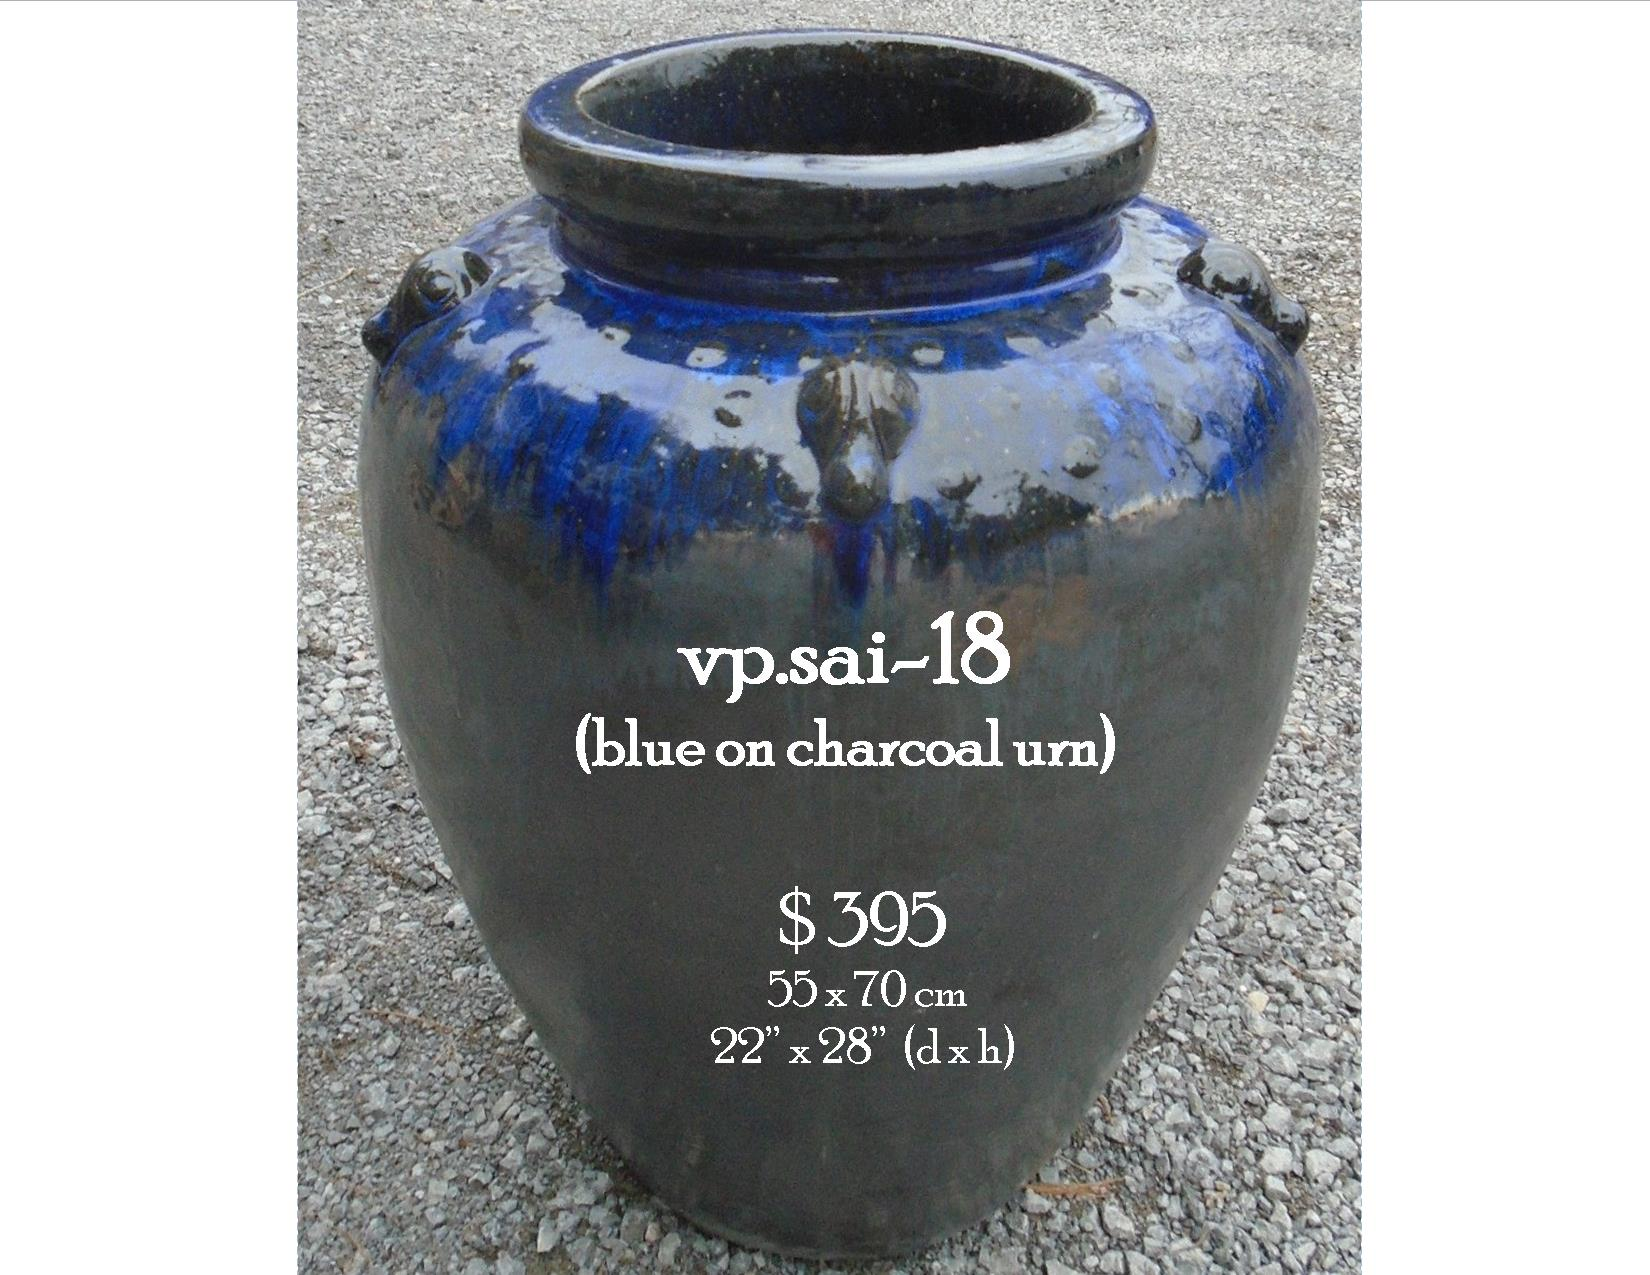 vp.sai-18  blue on charcoal urn